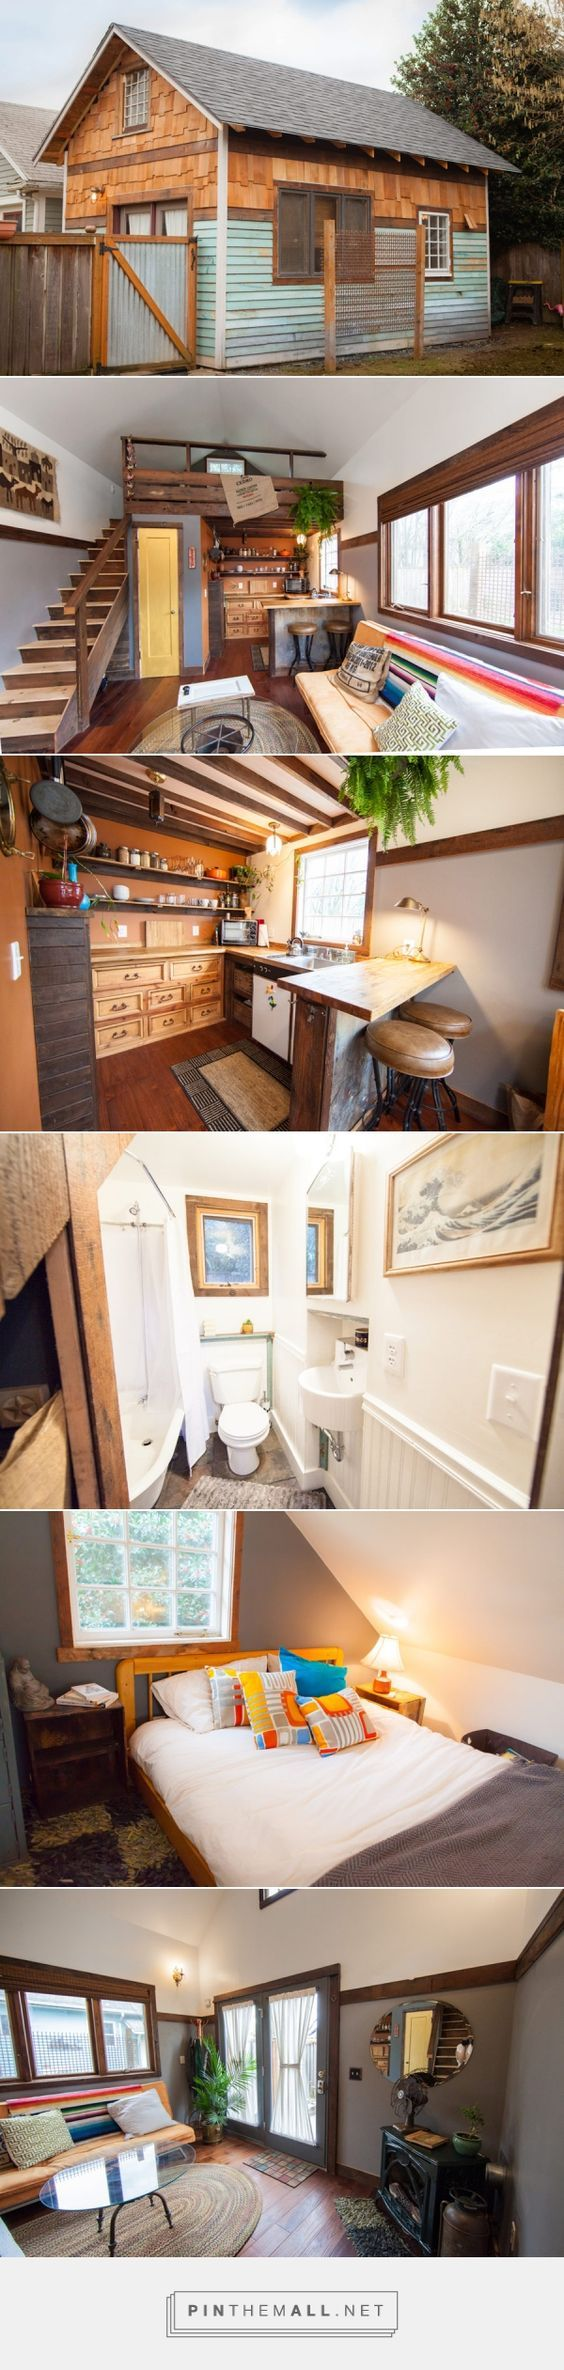 A tiny home built from a restored old garage in Portland, Oregon. Jenny and Michael's Tiny House | Tiny House Swoon